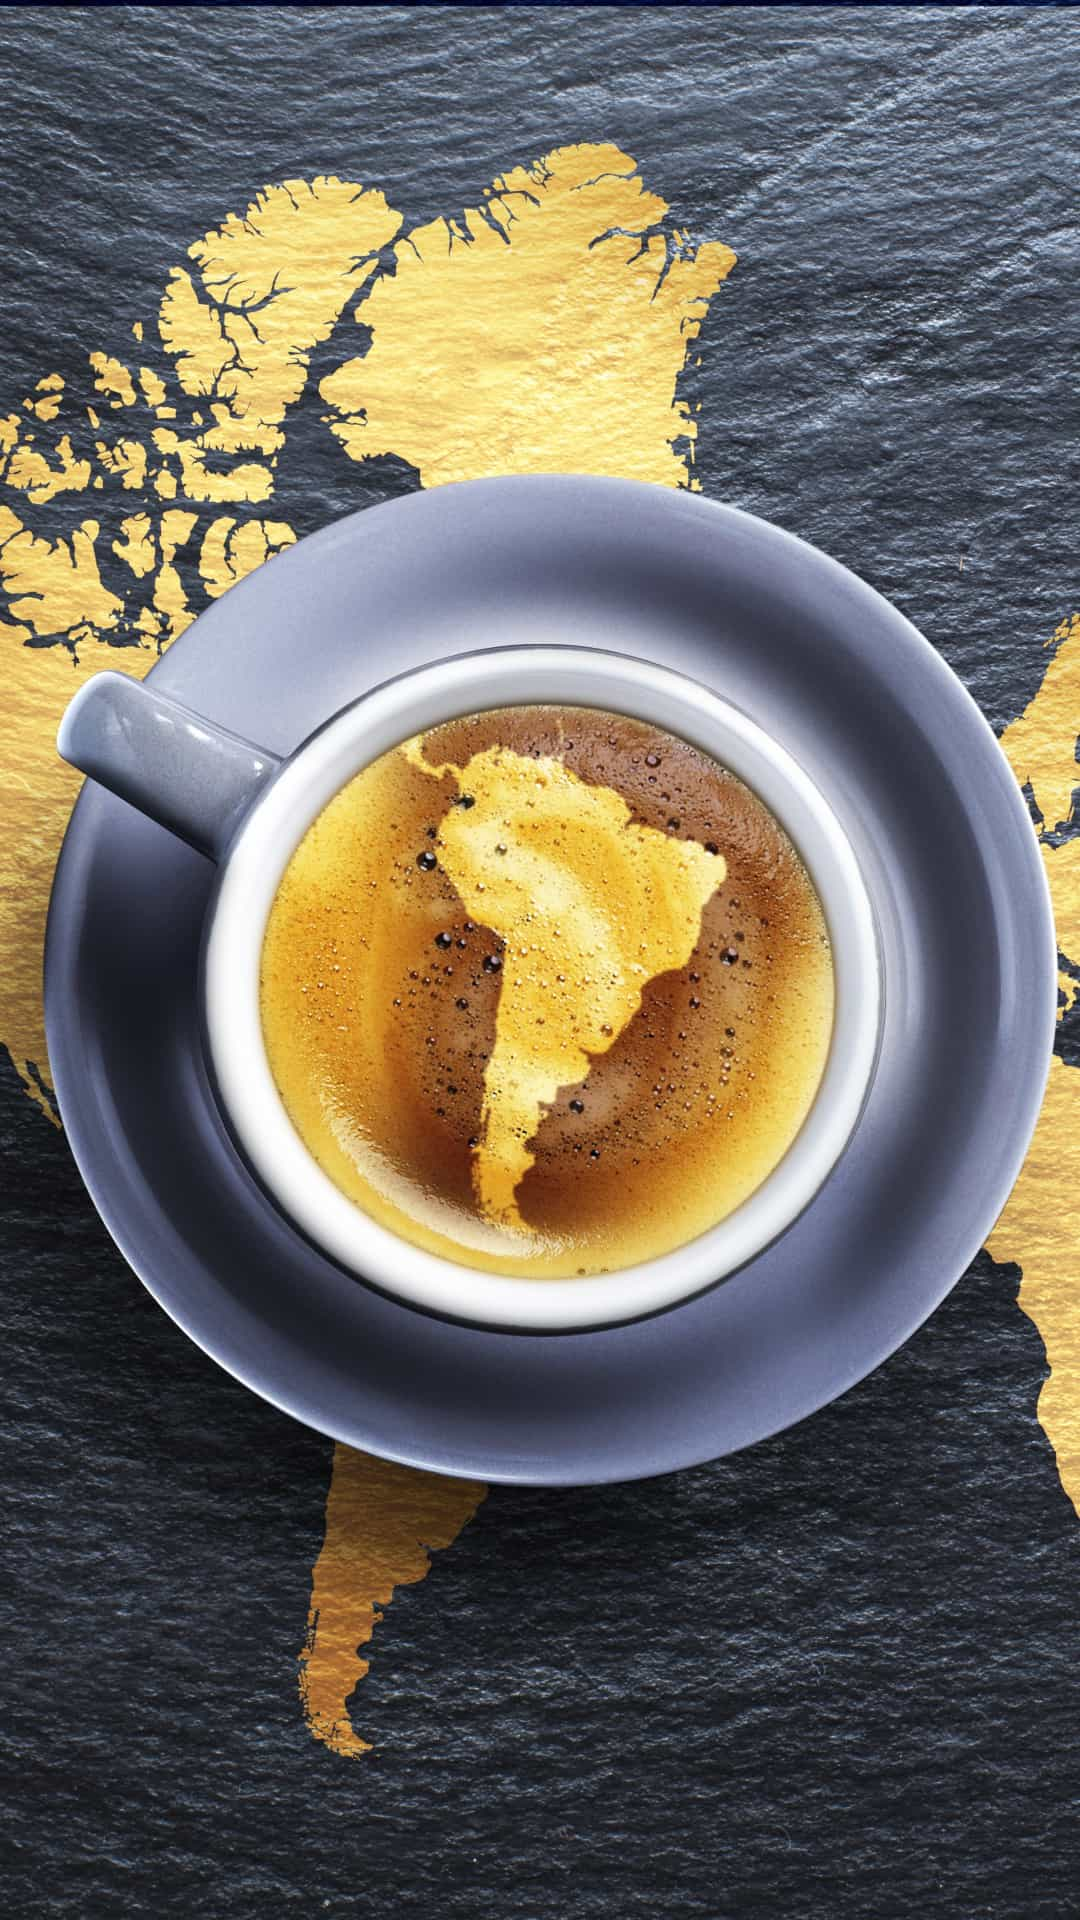 Coffee Africa Map Foam Android Wallpaper